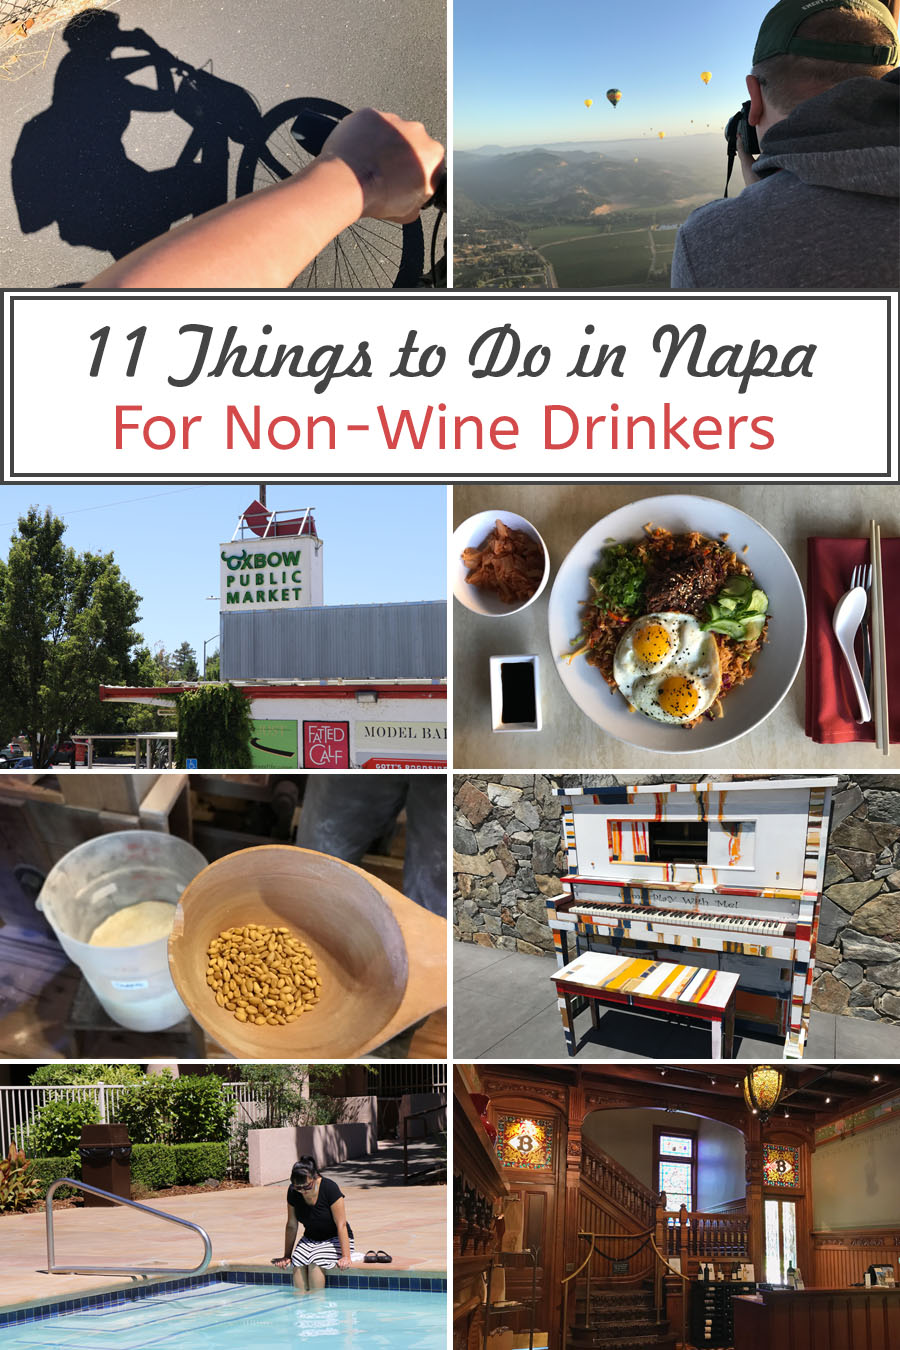 Cookies & Clogs | Travel tips: 11 Things to Do in Napa, CA that Don't Involve Drinking Wine - Napa Non Wine Drinkers